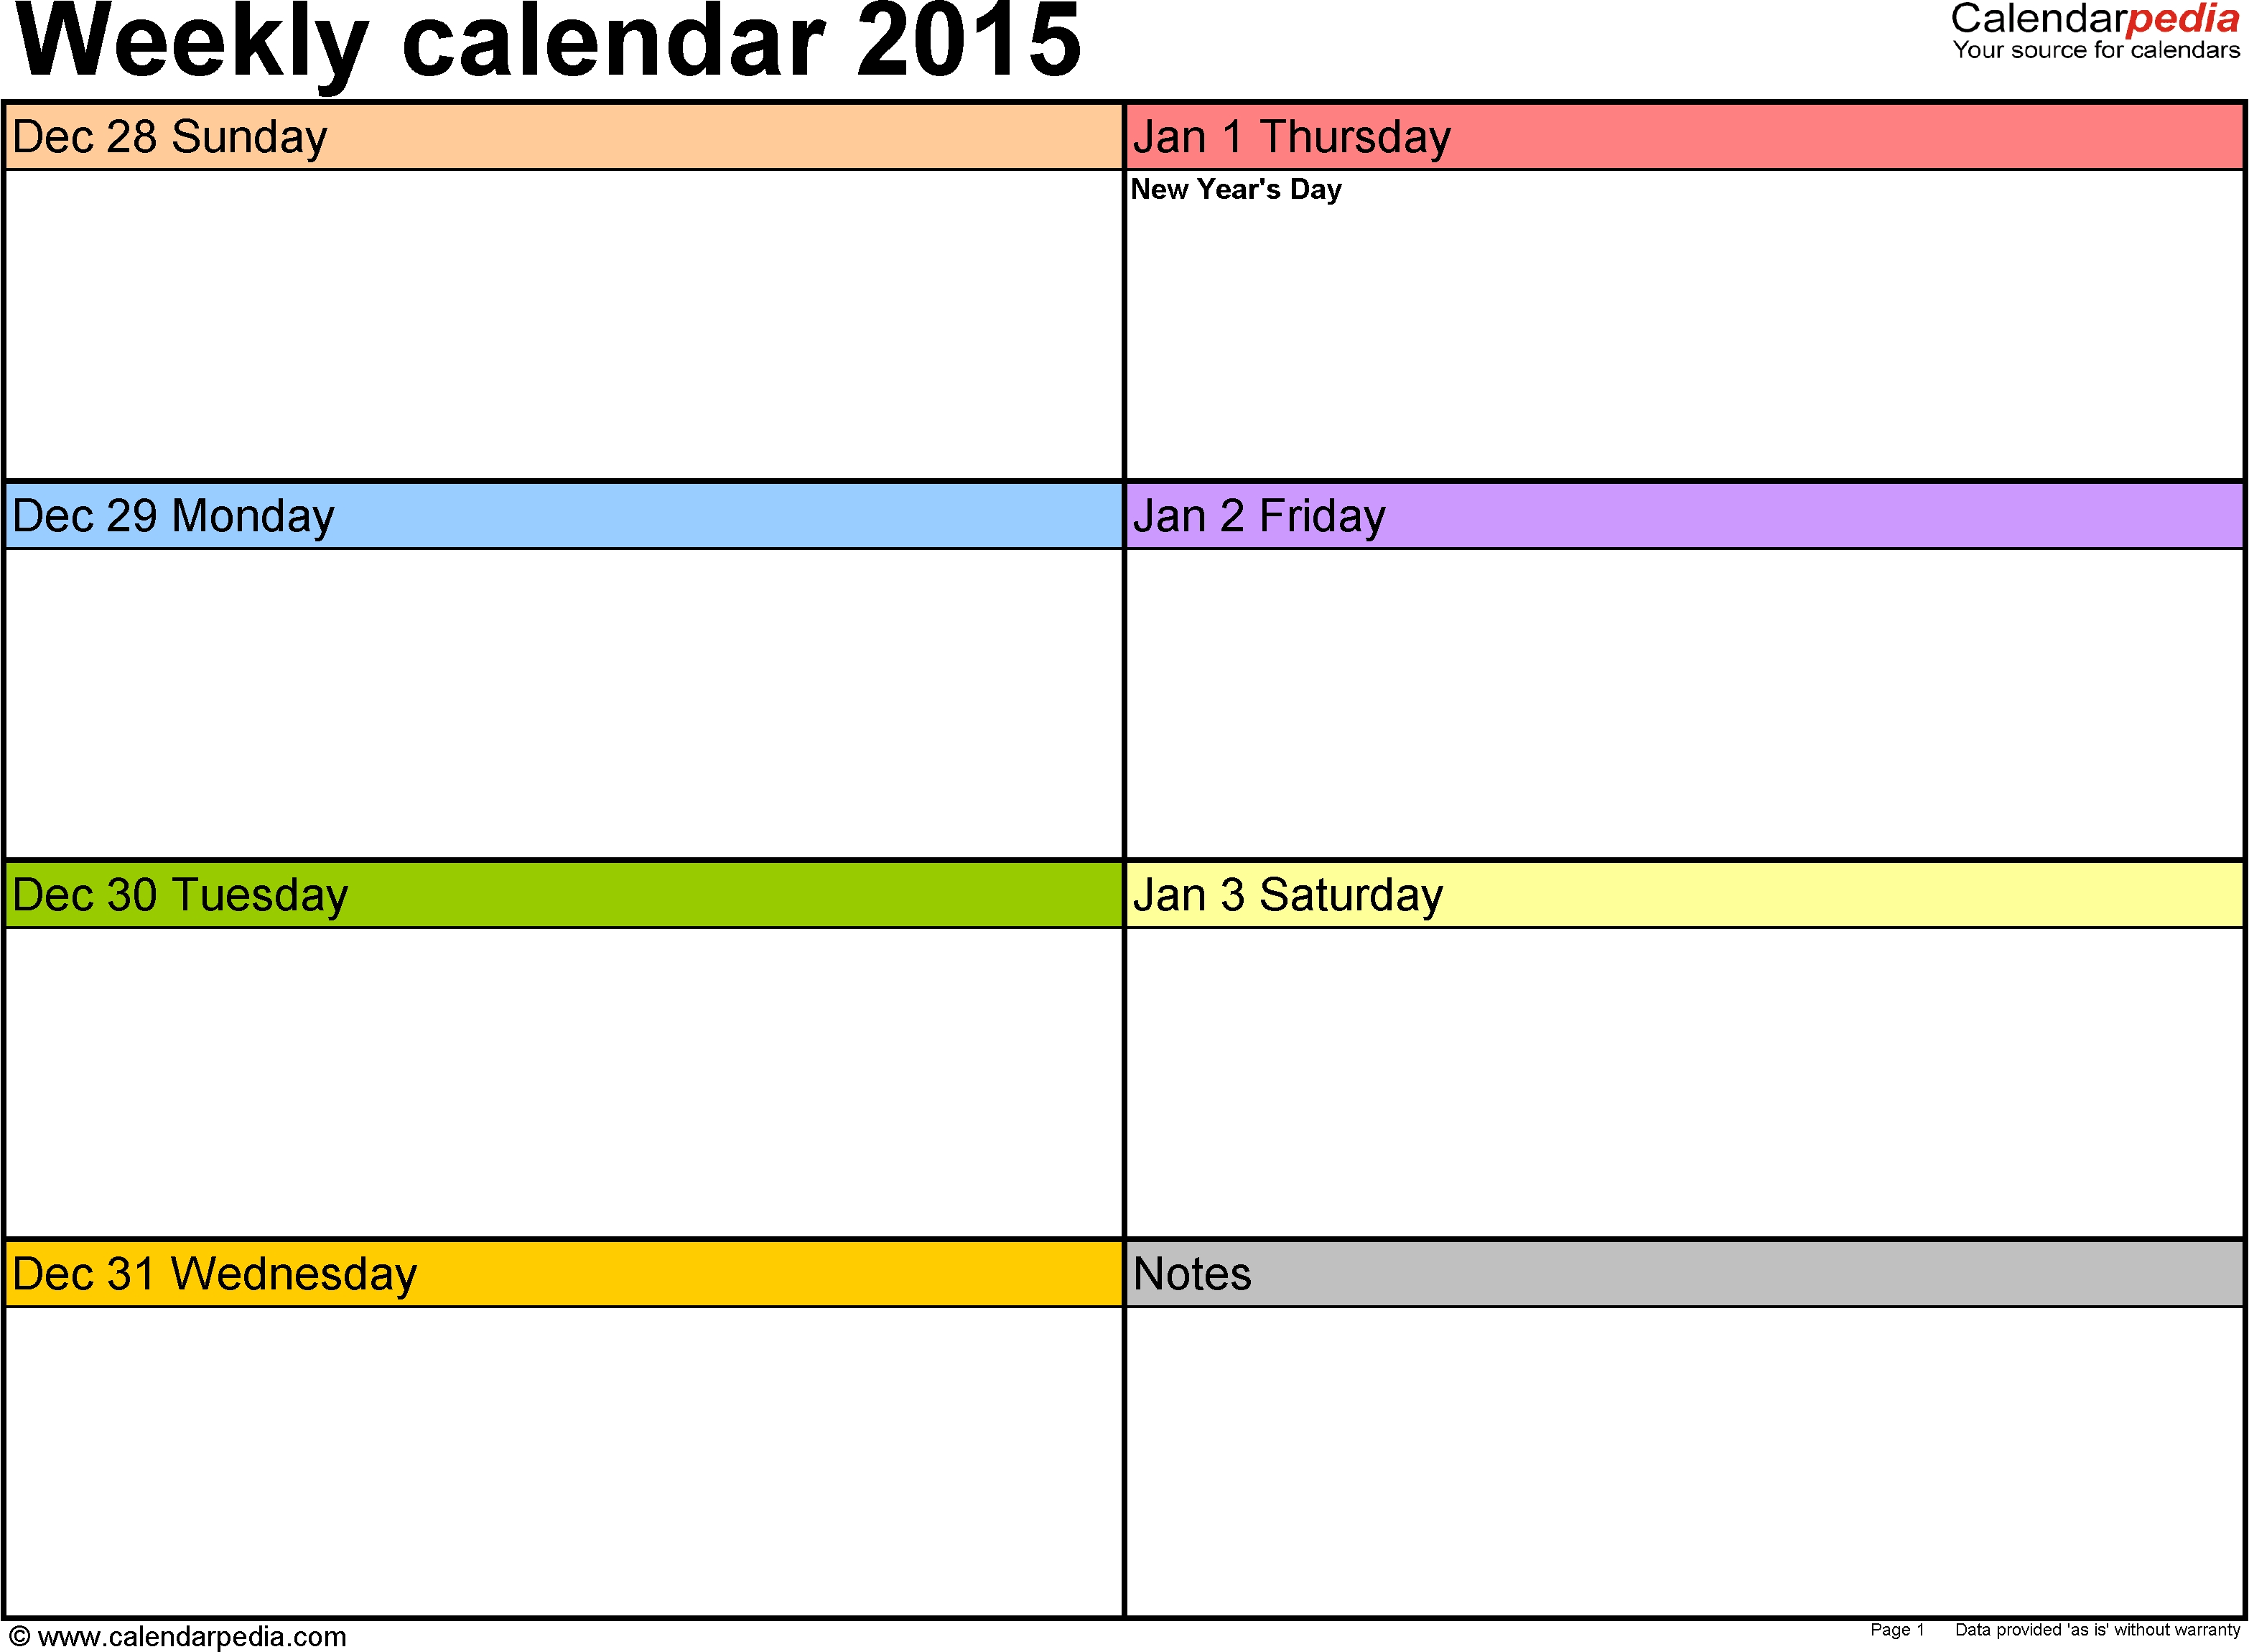 Weekly Calendar 2015 For Pdf - 12 Free Printable Templates for Blank 2 Week Printable Calendar